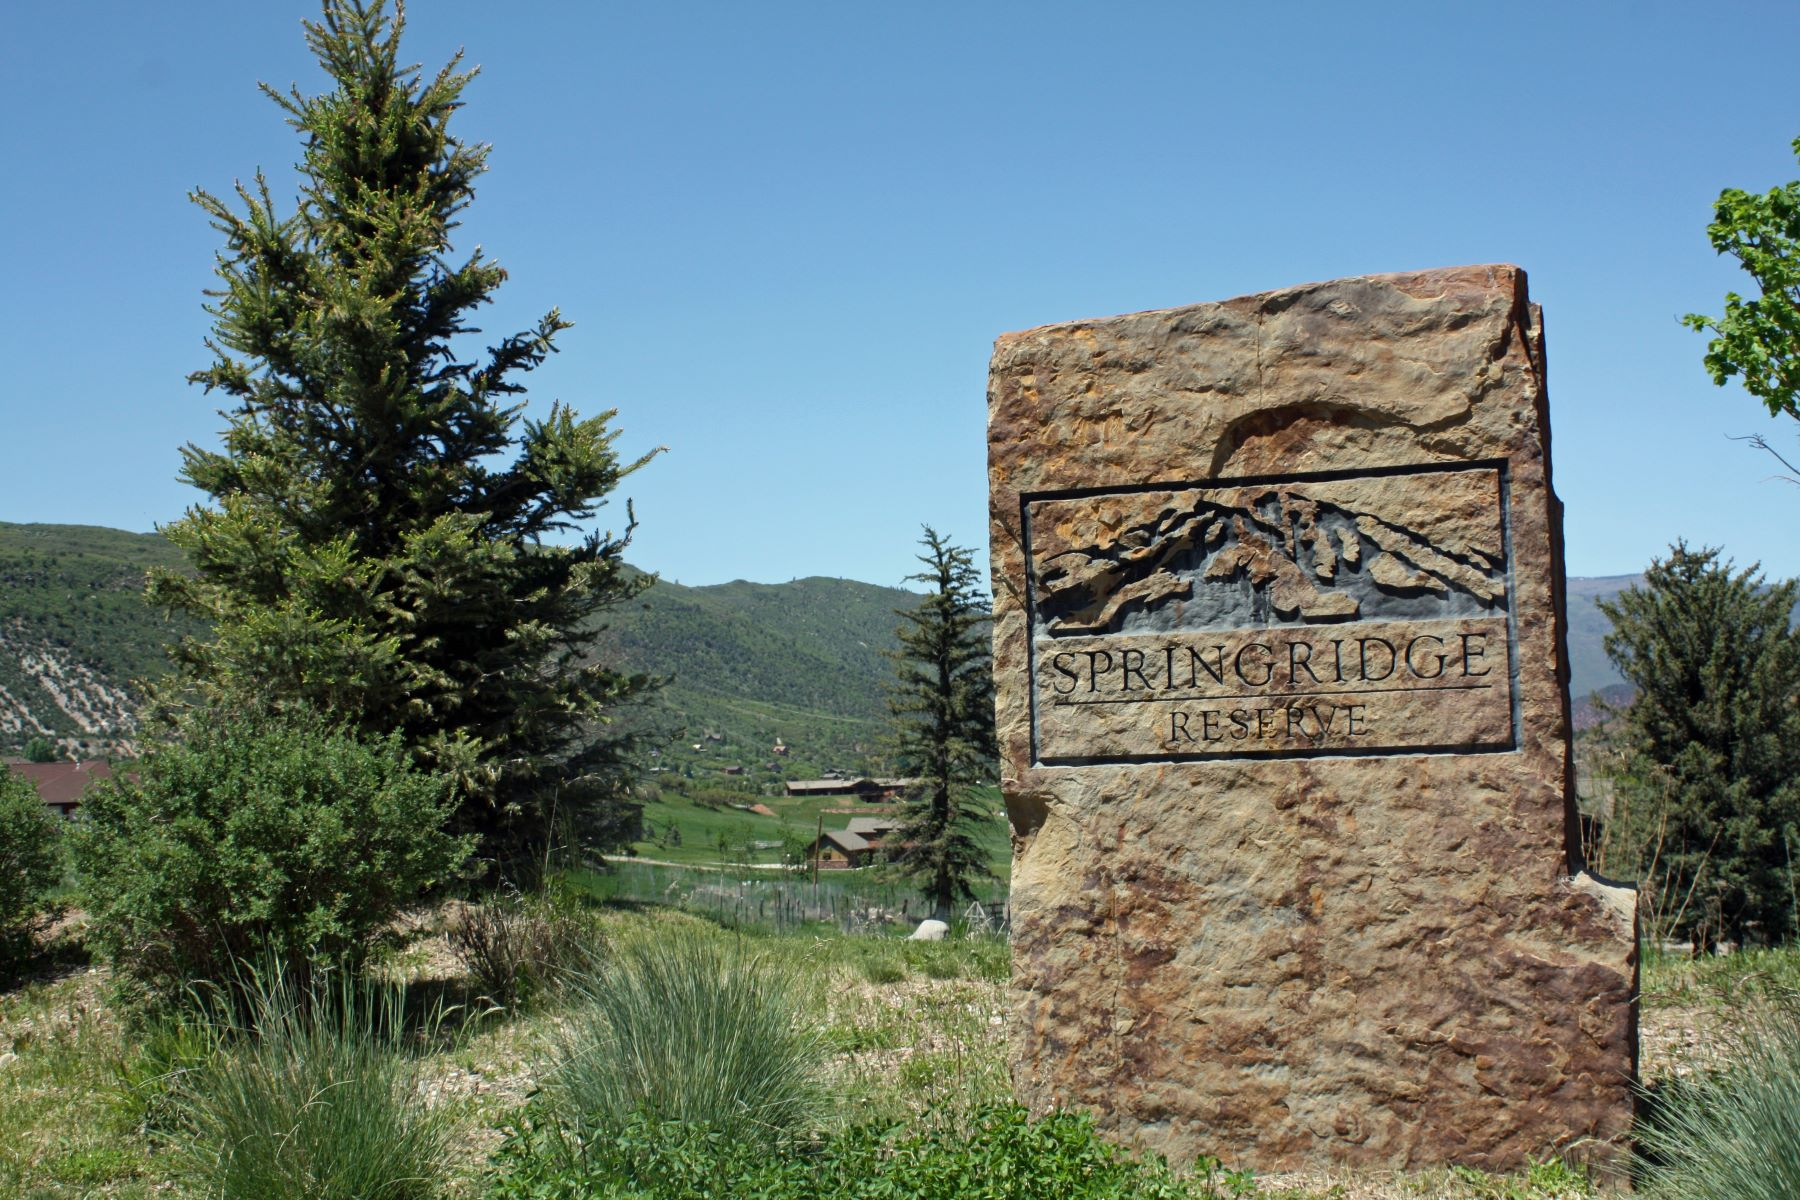 Land for Sale at Lot 43 Springridge Reserve Lot 43 Hidden Valley Glenwood Springs, Colorado 81601 United States